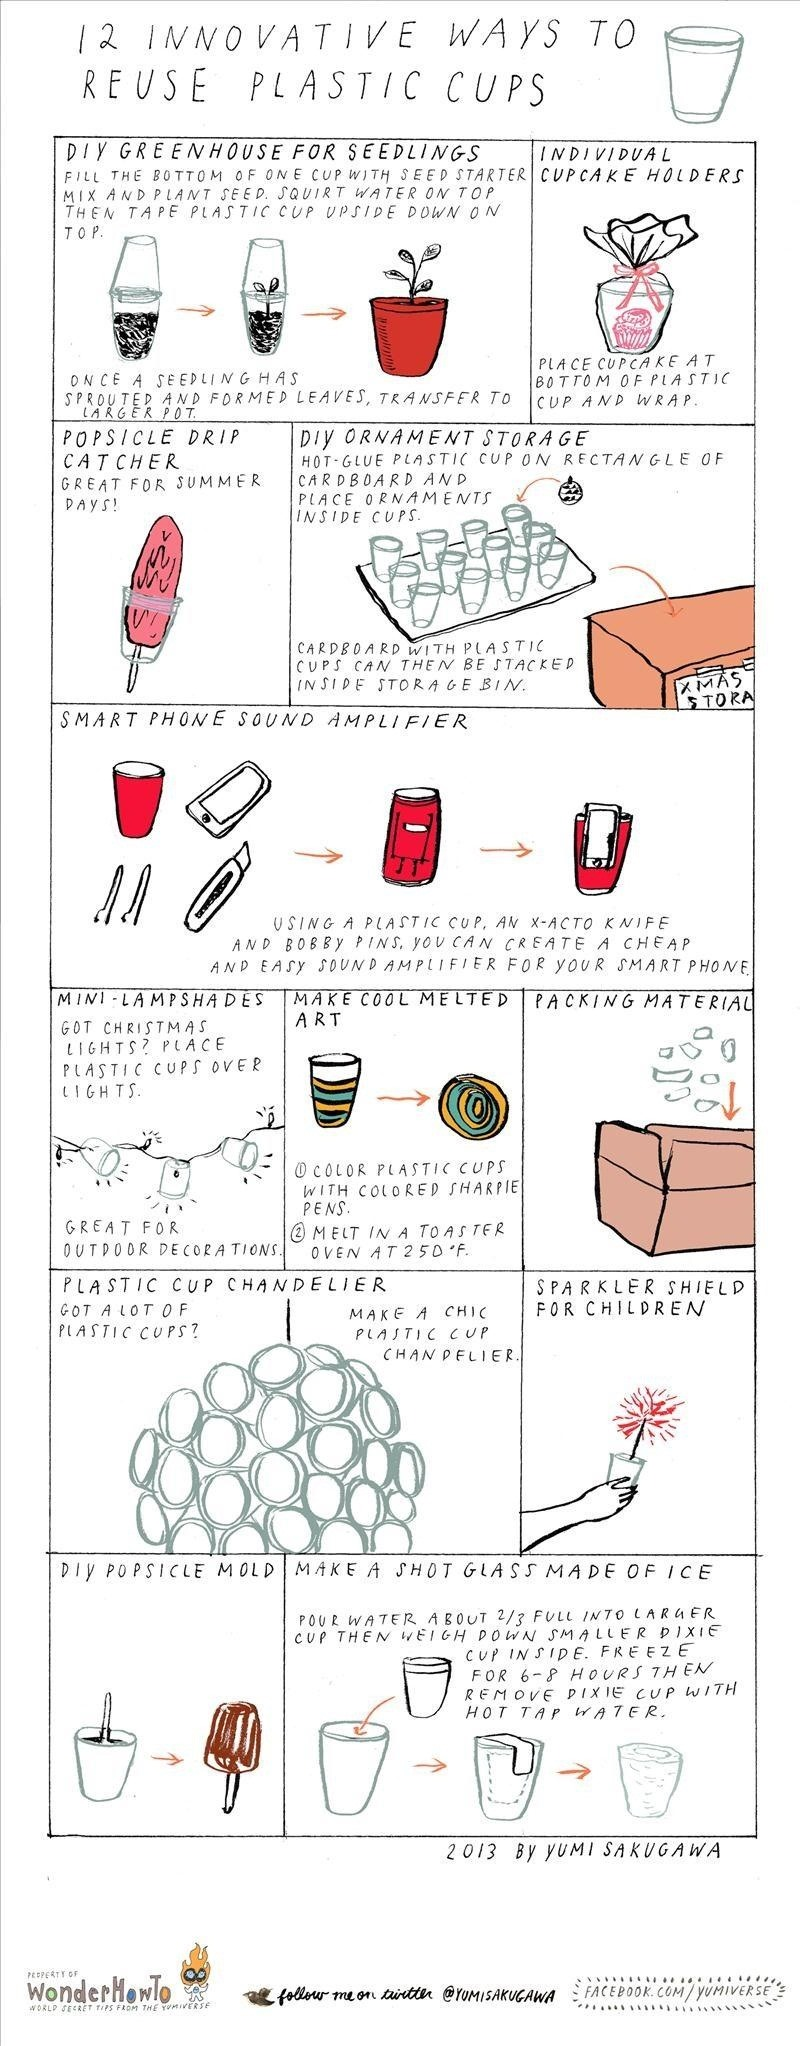 100 ways to recycle - Click On Image To Enlarge